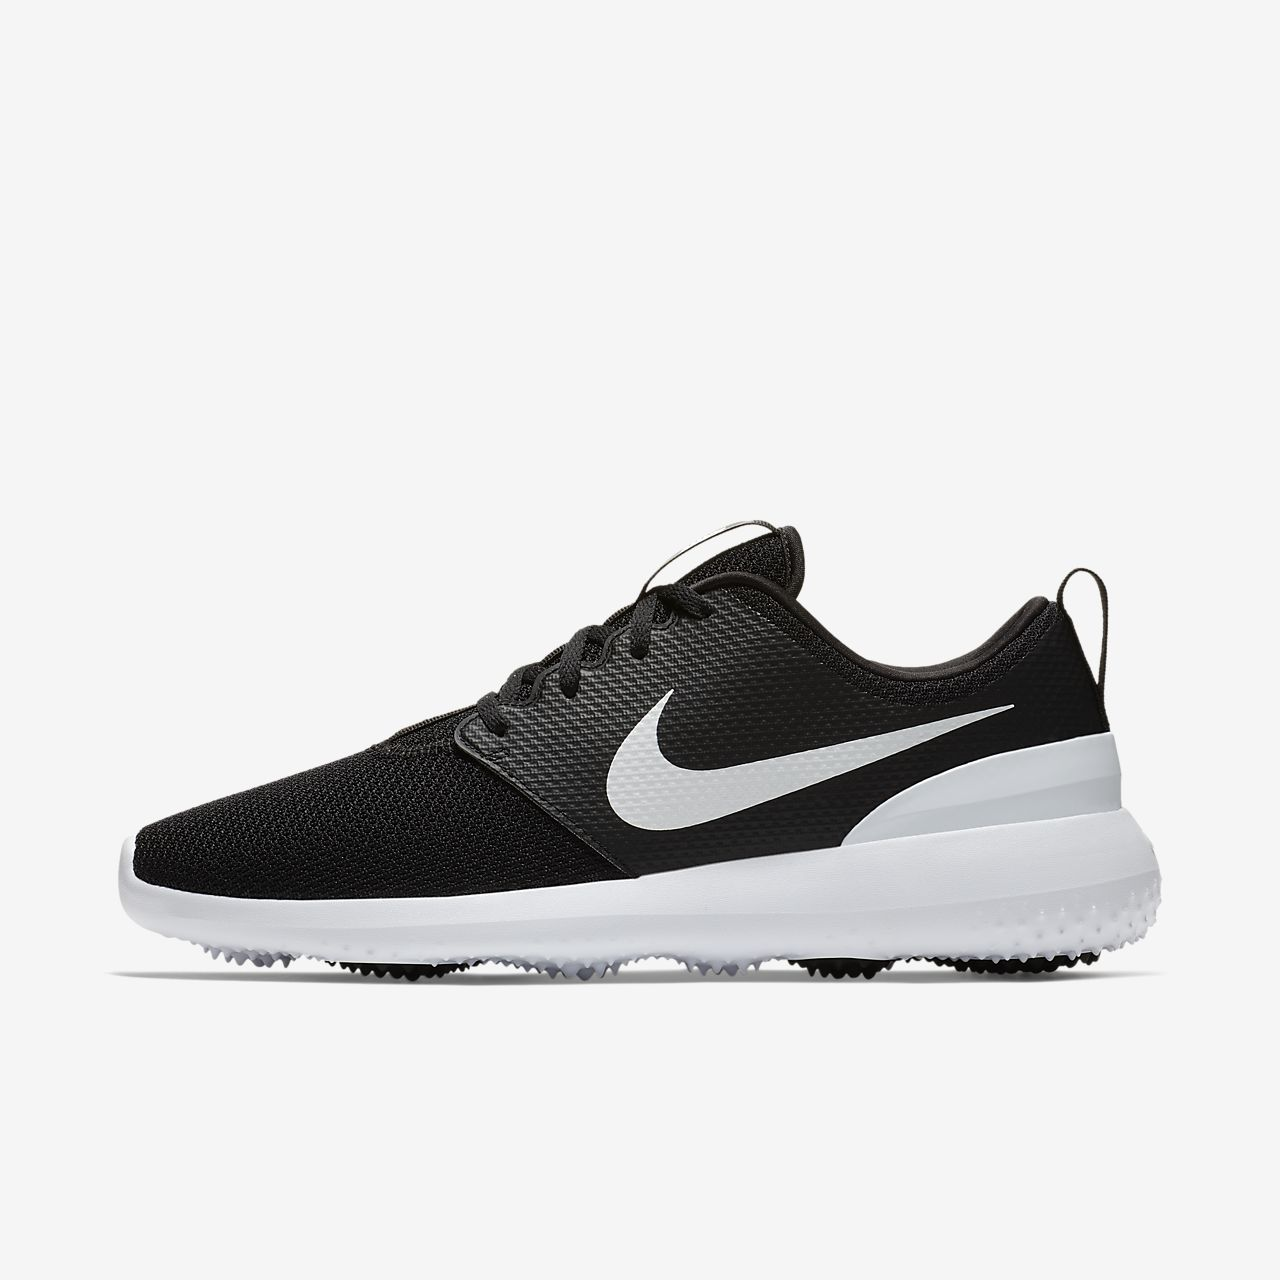 outlet store 54b17 c72c4 ... Nike Roshe G Men s Golf Shoe